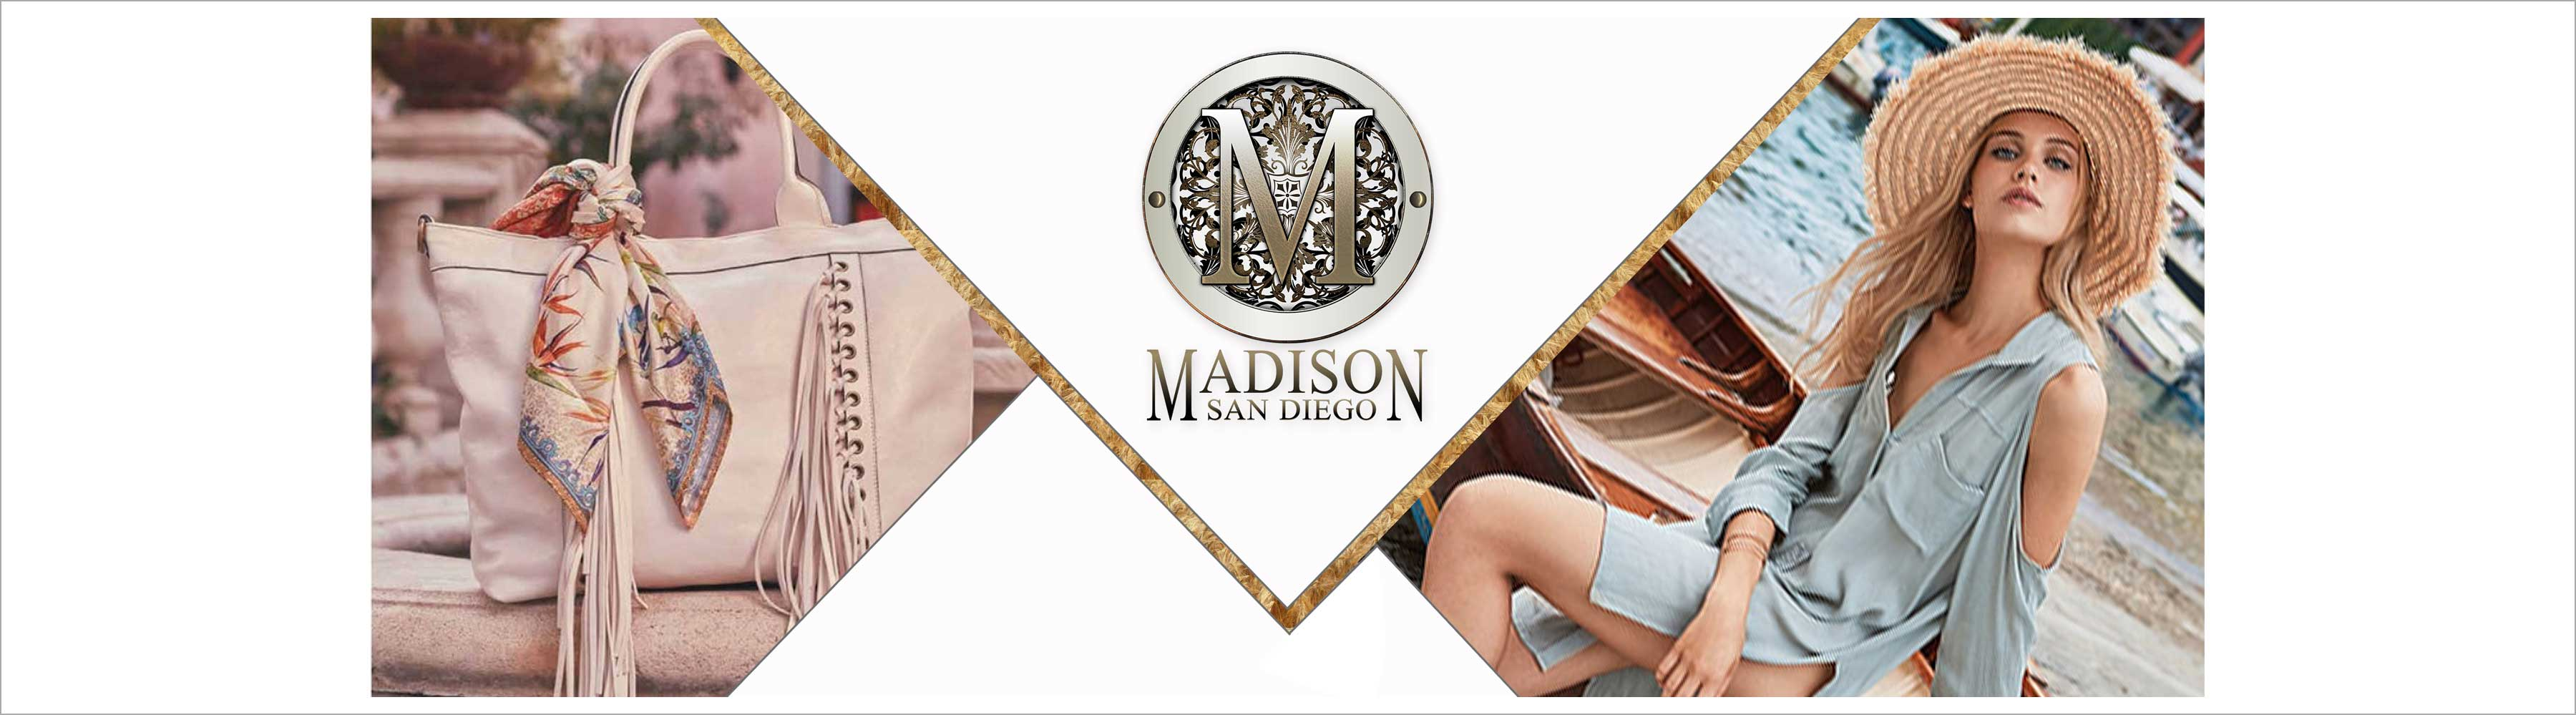 Madison-Facebook Page Art